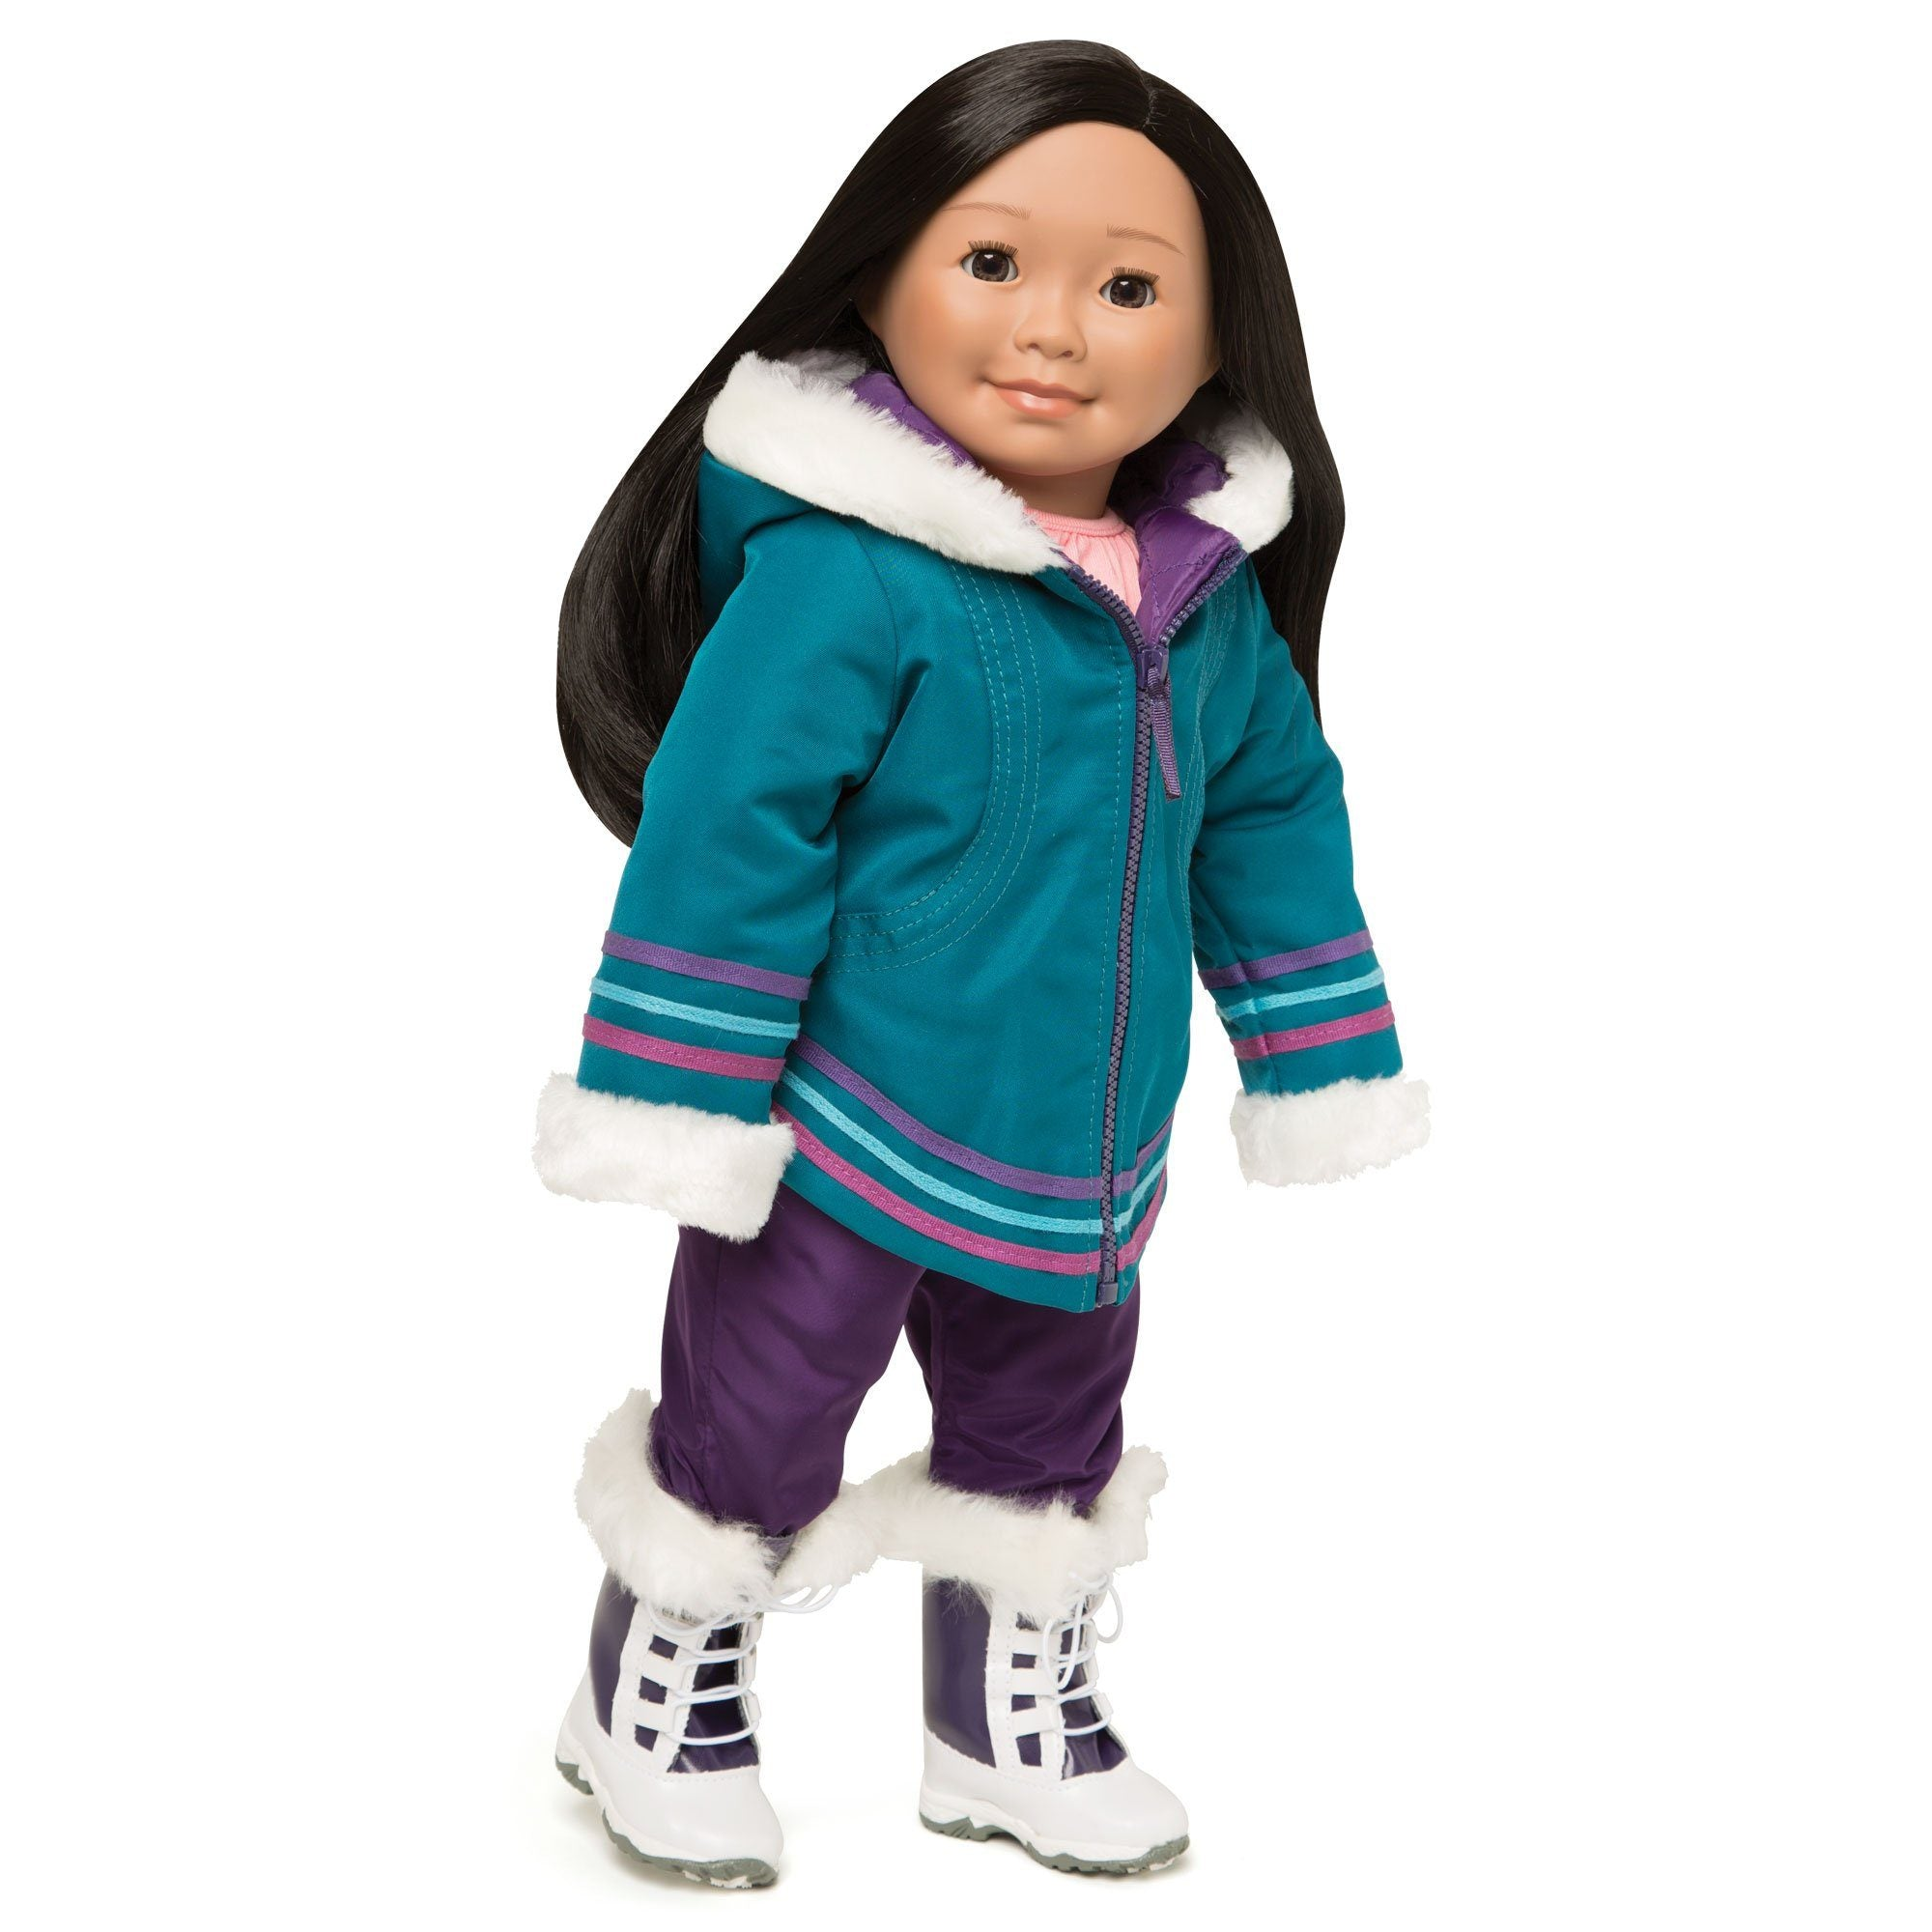 Aputi Parka of traditional Inuit design on 18 inch doll